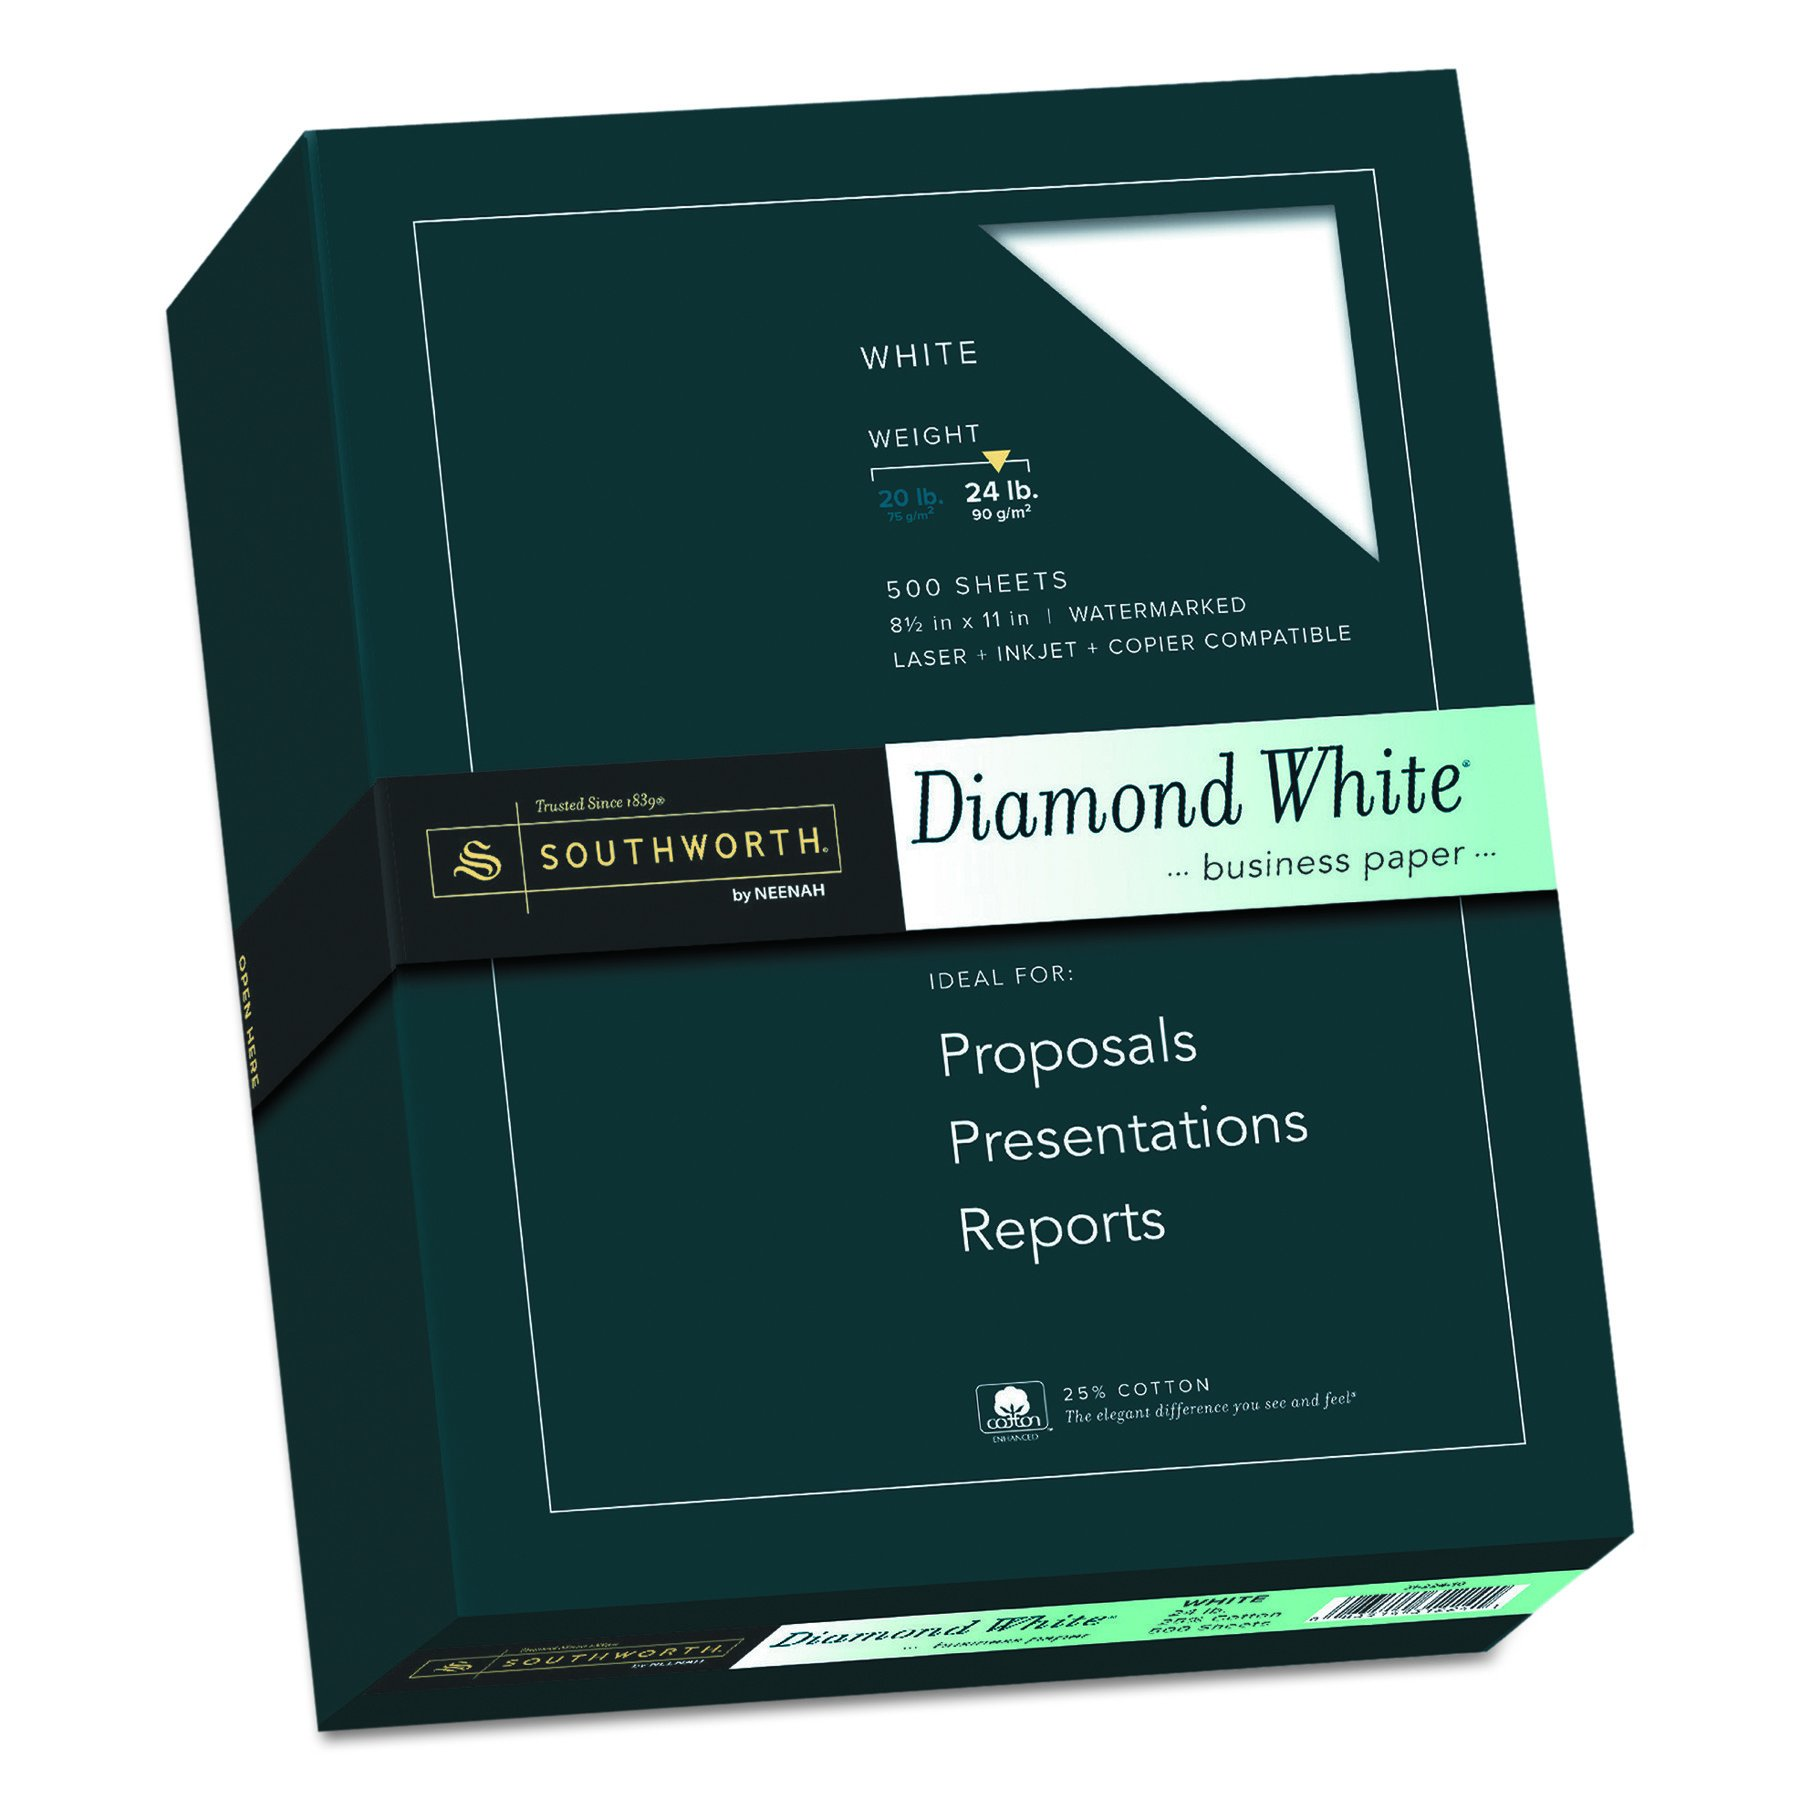 Southworth Diamond White Business Paper, White, 24 Pounds, 500 Count (31-224-10) by Southworth